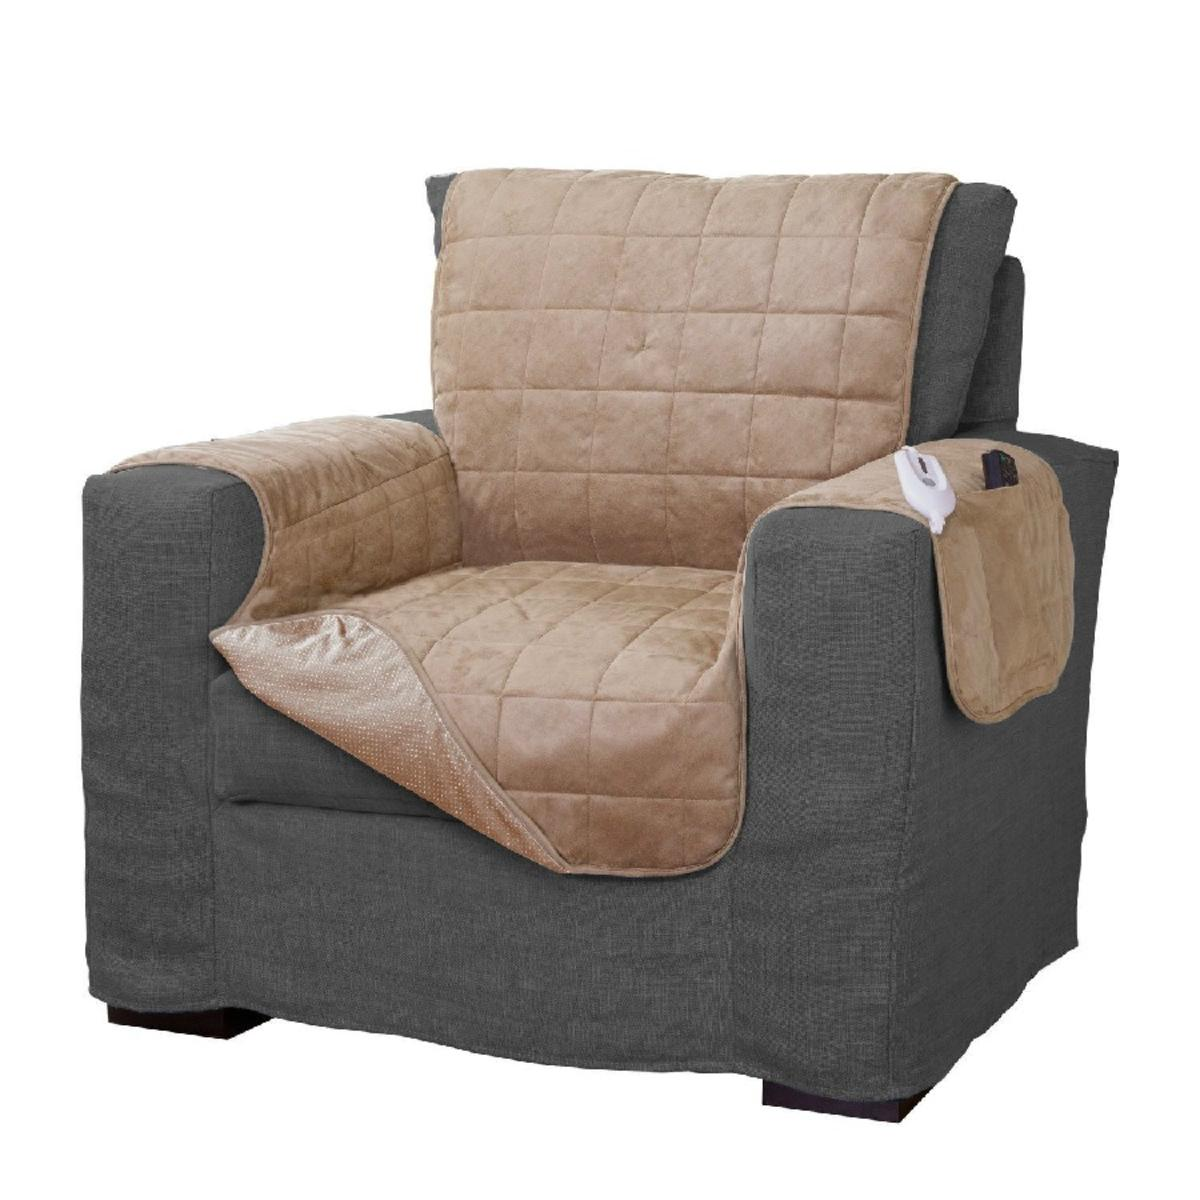 Serta Microsuede Diamond Quilted Electric Warming Furniture Chair Protector    The Warming Store